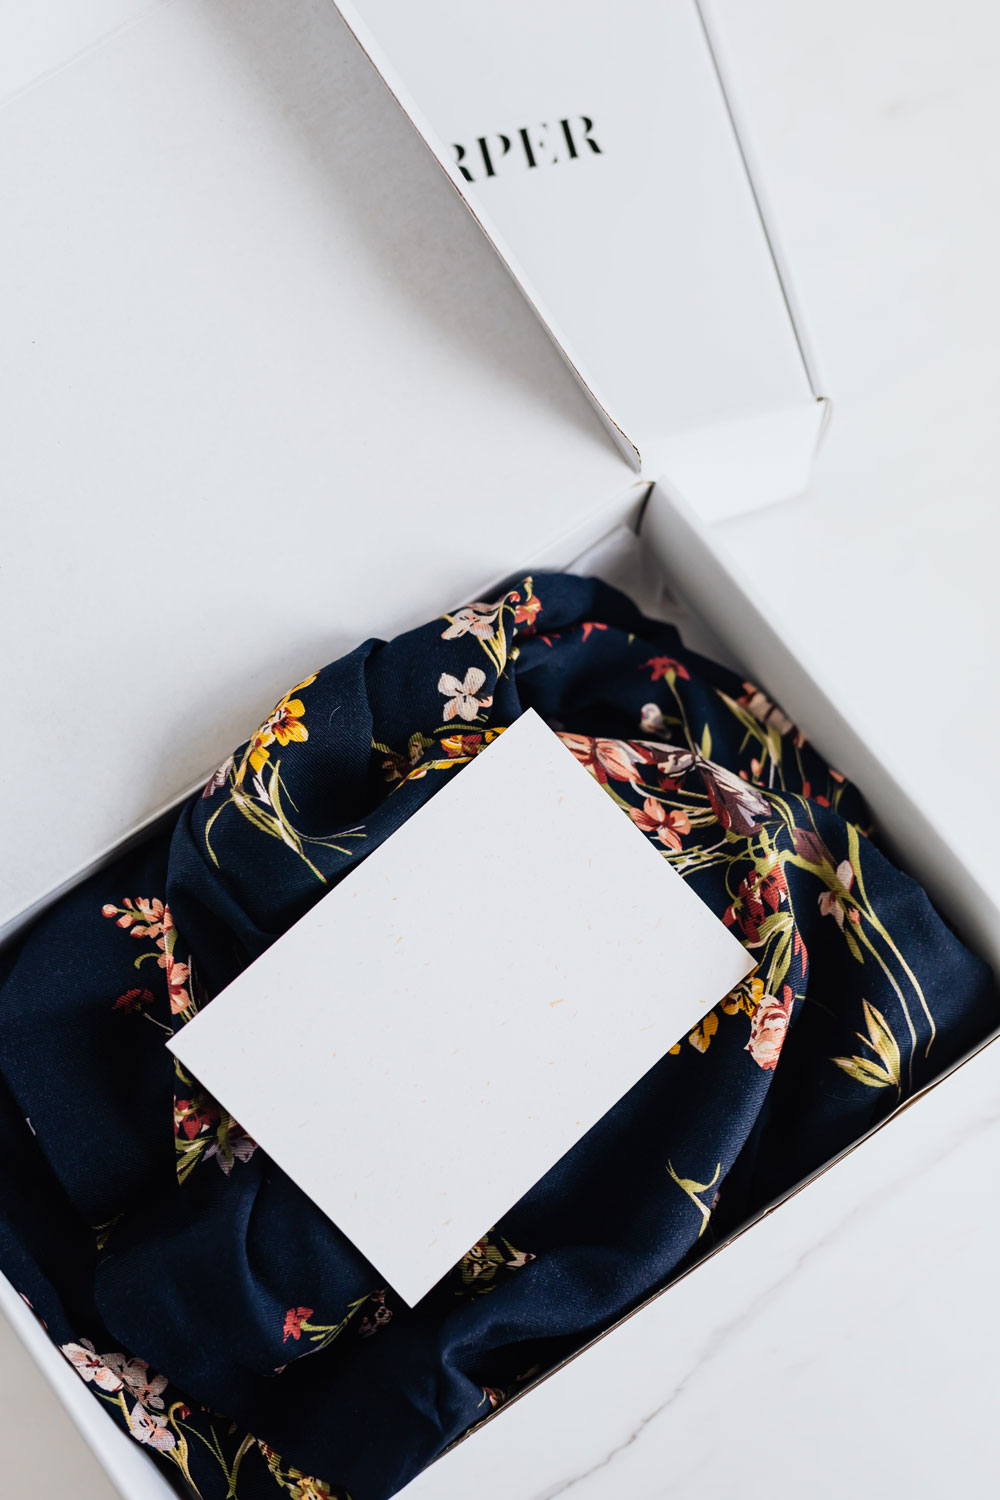 A post card on top of clothing in a branded shipping box